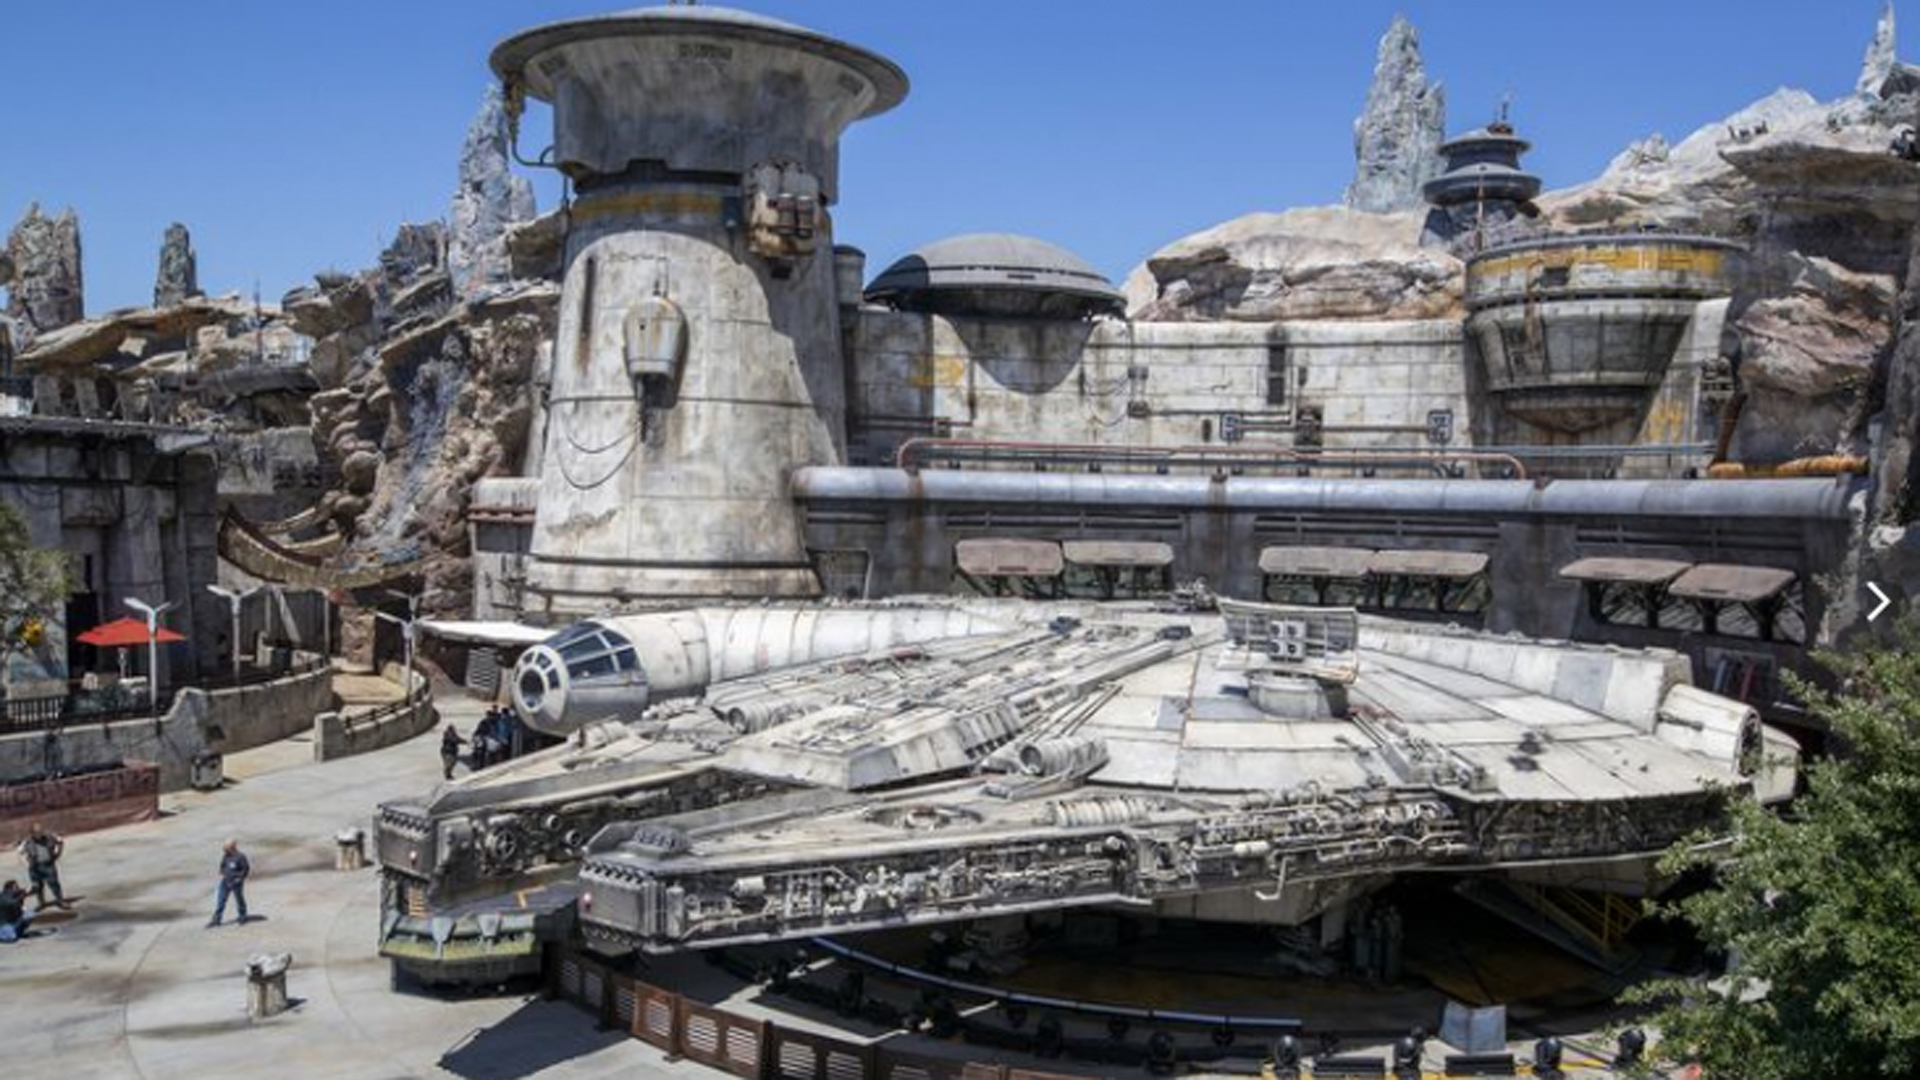 A preview of the Millennium Falcon: Smugglers Run section of Star Wars: Galaxy's Edge at Disneyland. (Credit: Allen J. Schaben / Los Angeles Times)